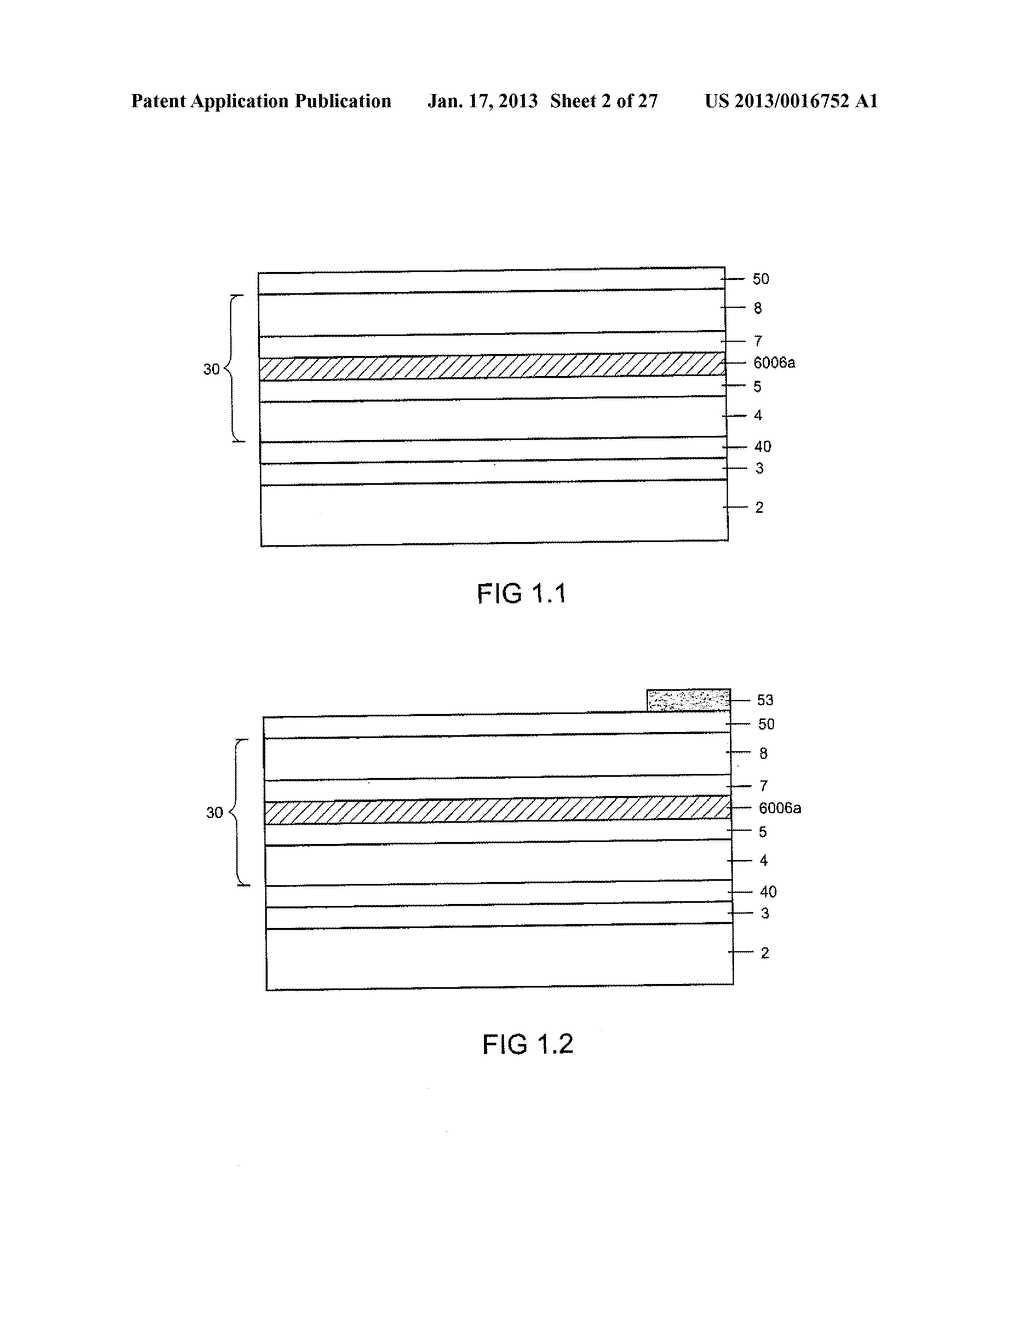 Laser Diode Assembly and Method for Producing a Laser Diode AssemblyAANM Lell; AlfredAACI Maxhutte-HaidhofAACO DEAAGP Lell; Alfred Maxhutte-Haidhof DEAANM Straussburg; MartinAACI DonaustaufAACO DEAAGP Straussburg; Martin Donaustauf DE - diagram, schematic, and image 03